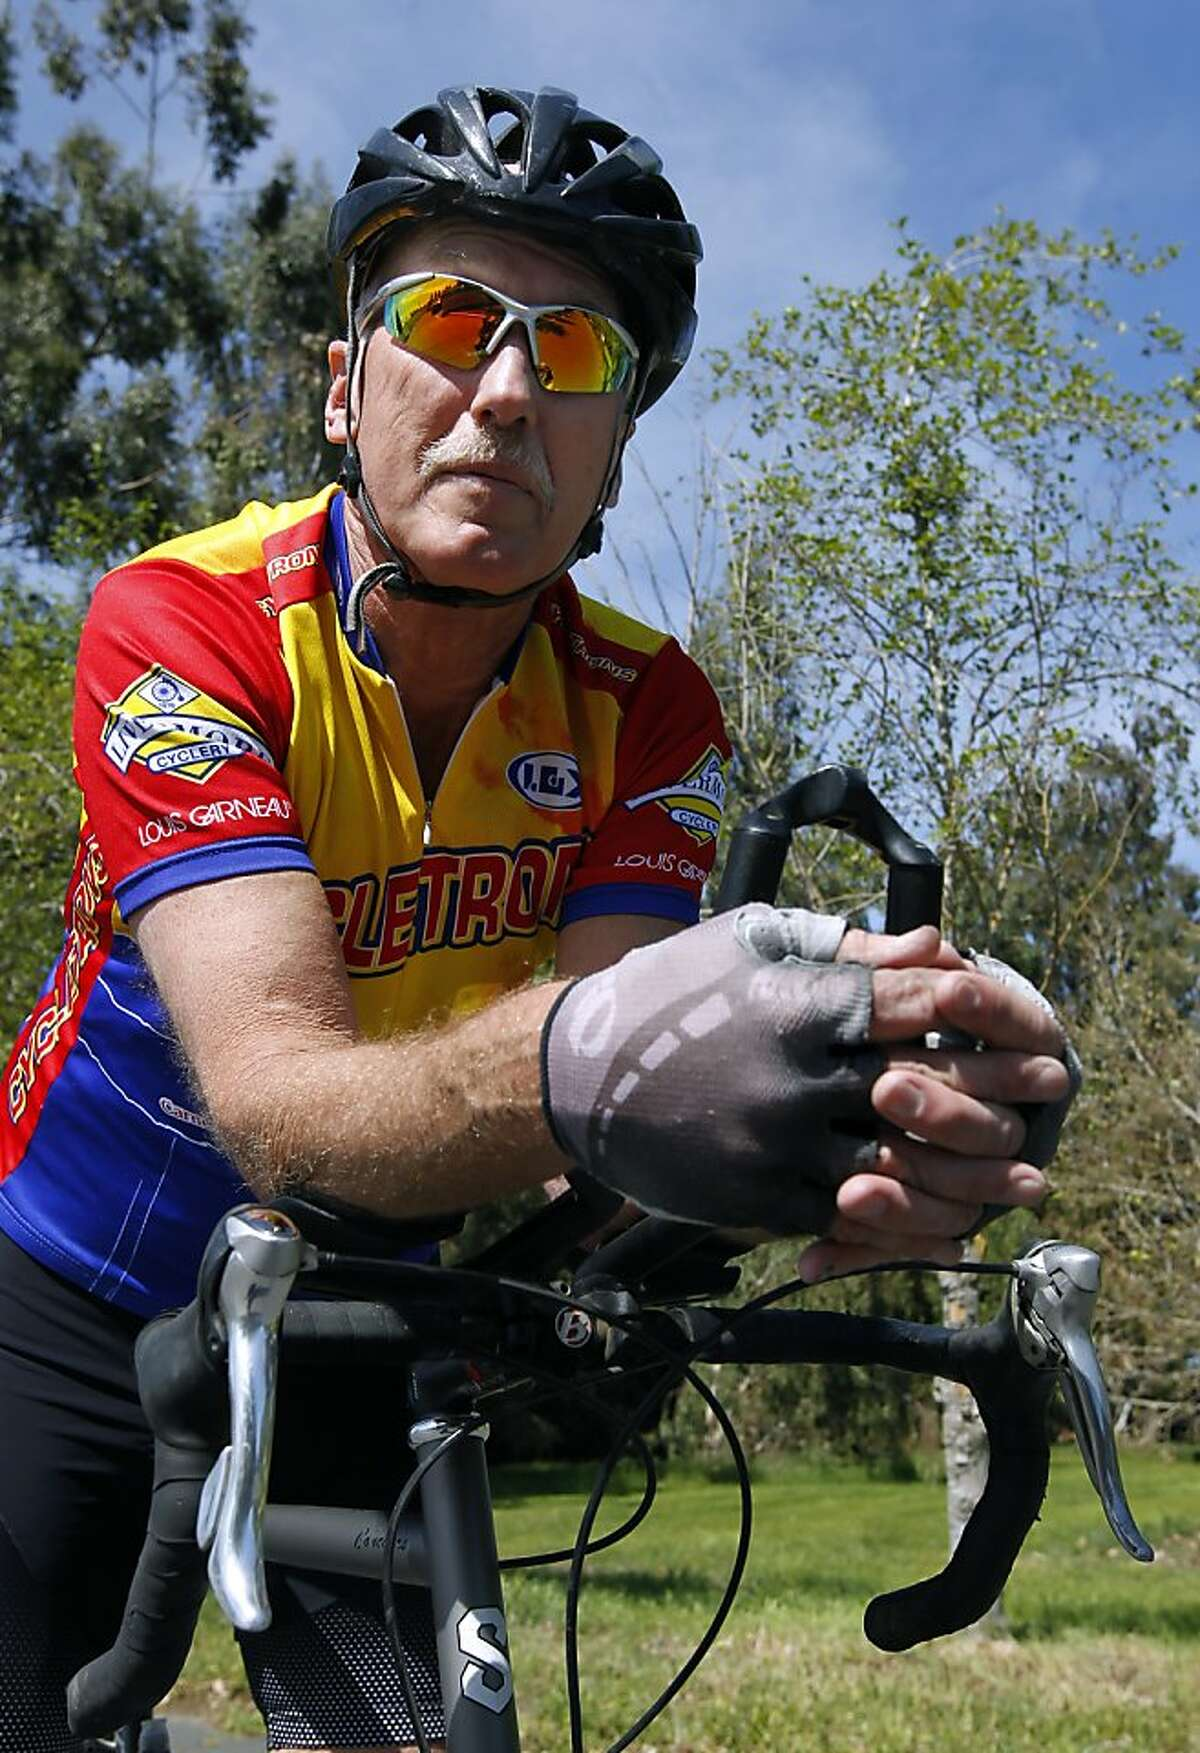 Dave Dye prepares to depart on his daily 20-mile bike ride in French Camp, Calif. on Saturday, March 23, 2013.